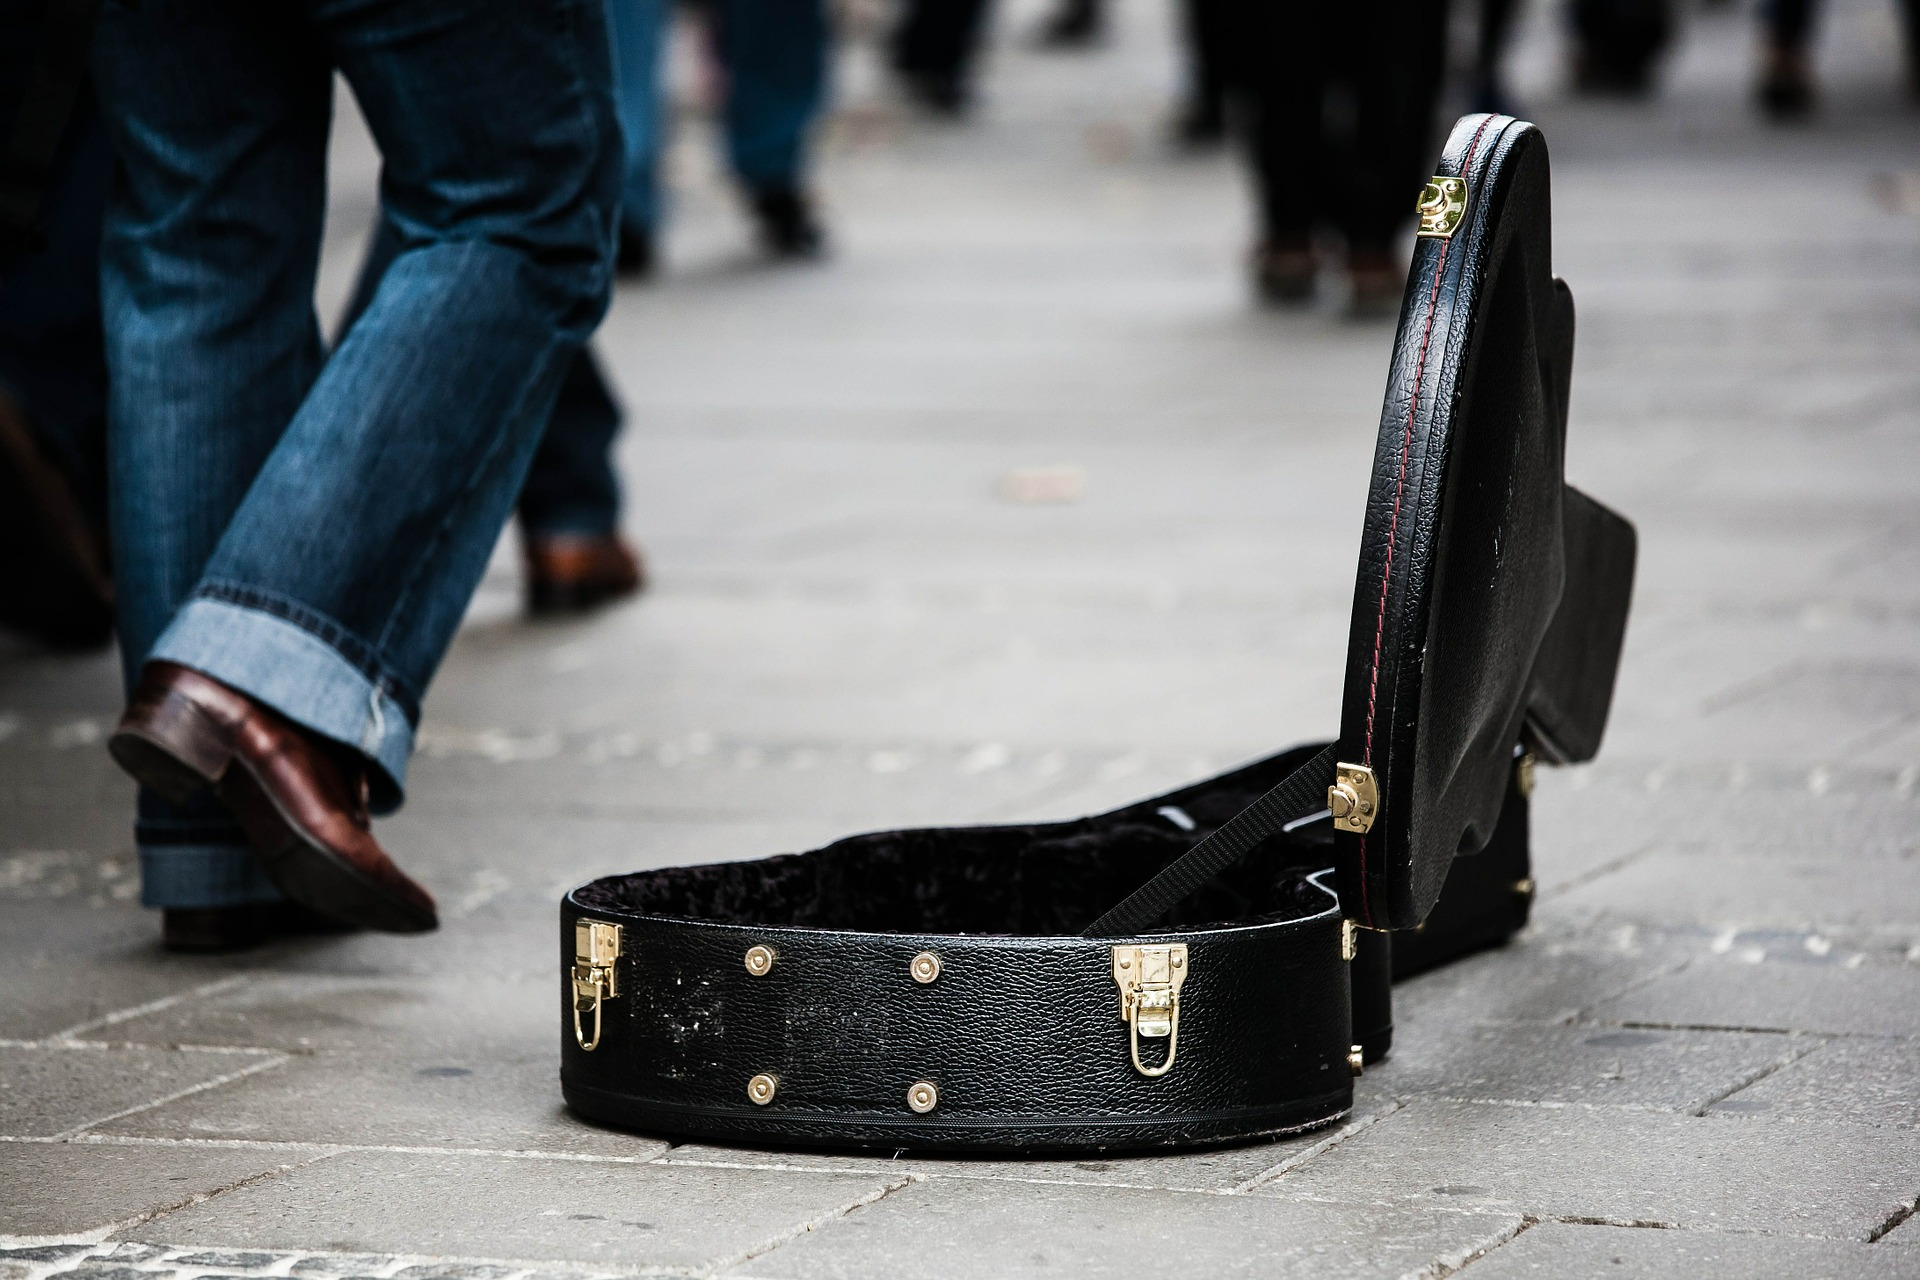 Guitar Case walking by - Lesson Pros